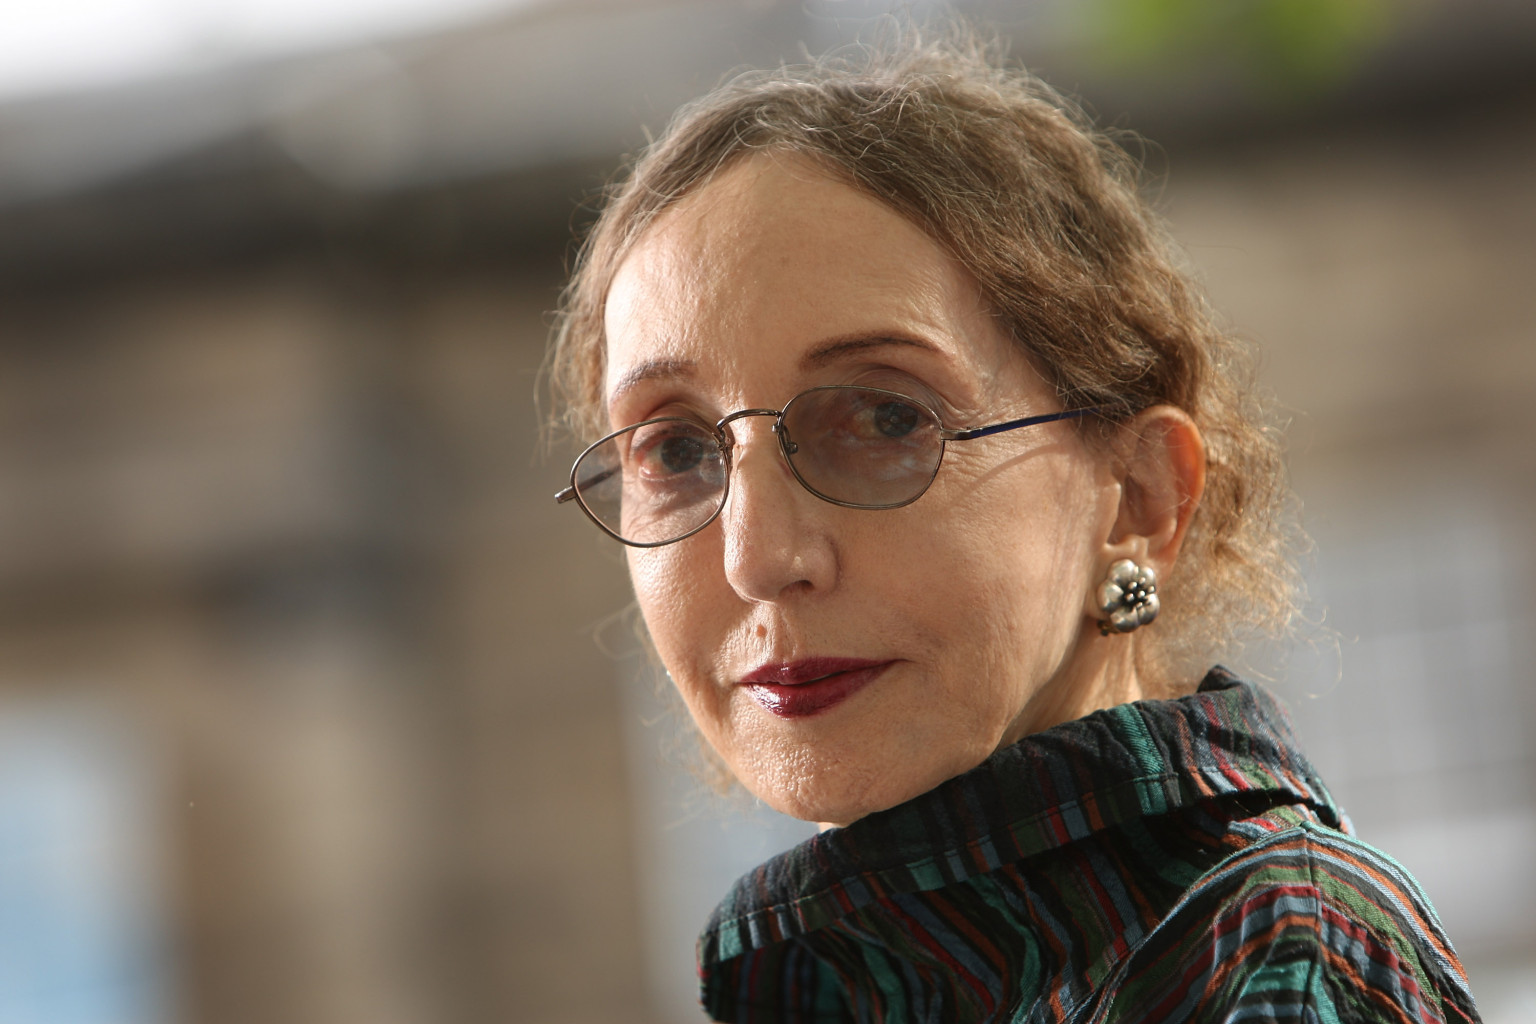 an analysis of joyce carol qates One of the united states's most prolific (producing a lot of work) and versatile (producing a wide variety of work) contemporary writers, joyce carol oates focuses upon the spiritual.